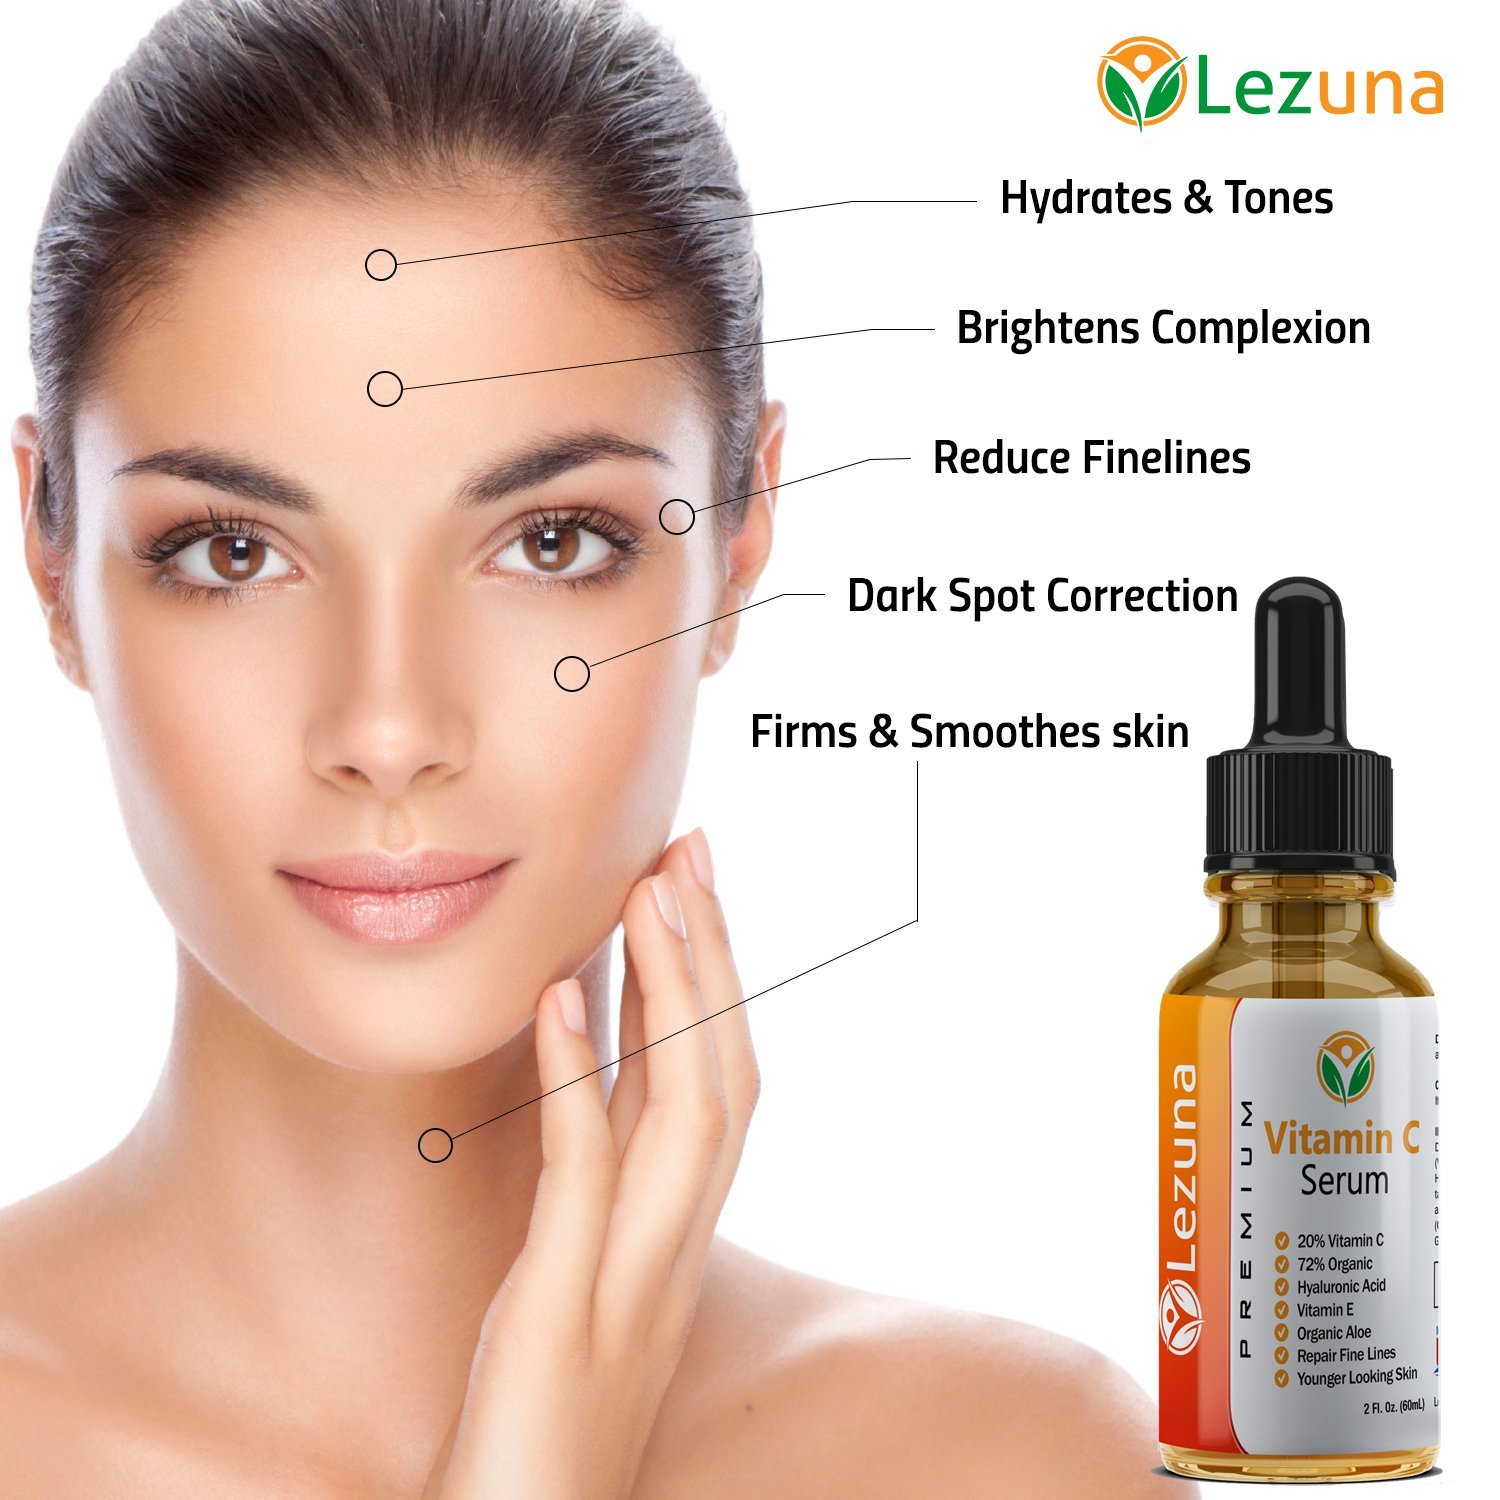 Vitamin C Serum With Hyaluronic Acid,Larger 2 Oz Size, Organic Aloe, Jojoba Oil, Vitamin E, Reduce Fine Lines, Anti-Aging, Hydrates & Tones, Dark Spot Correction, Smoother Younger Looking Skin by Lezuna (Image #6)